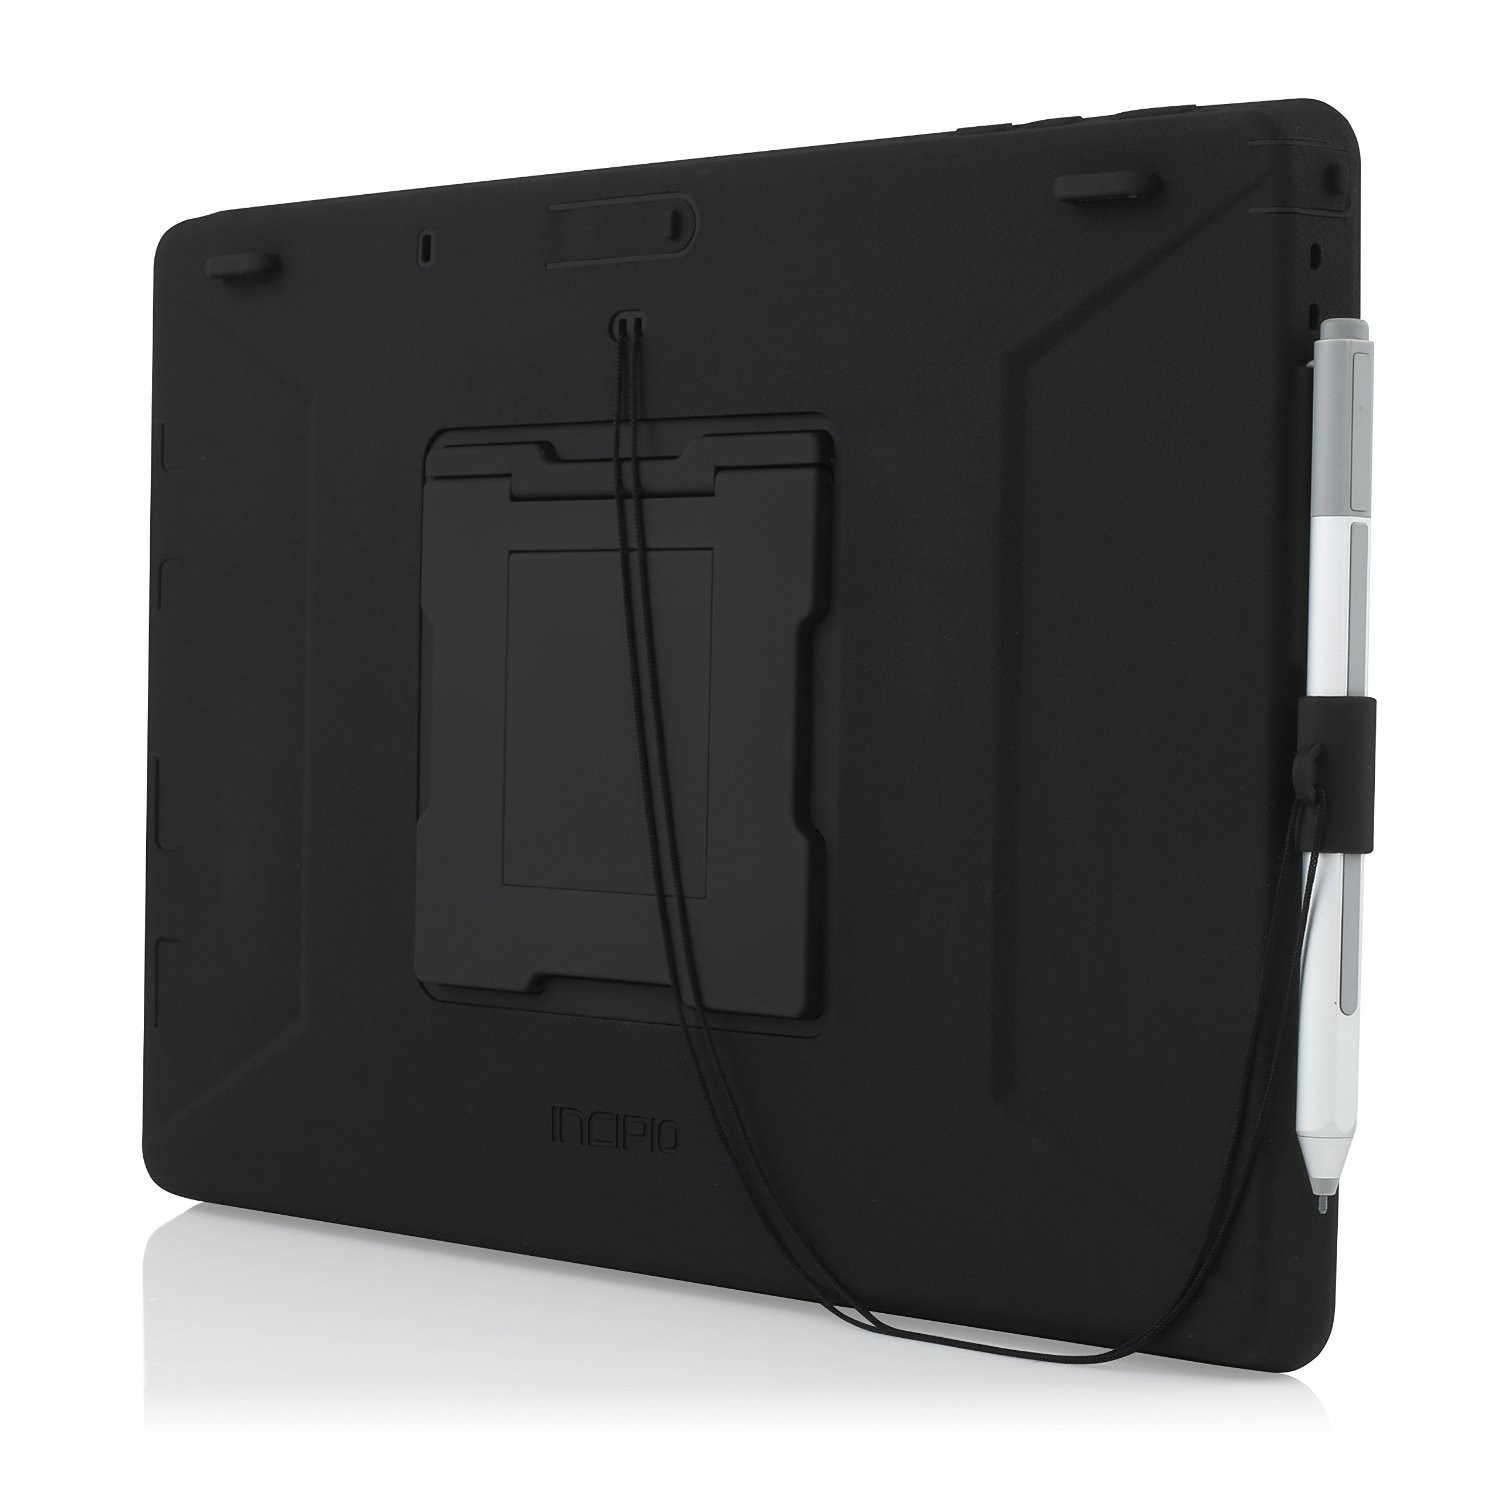 Incipio Capture for Surface Pro 4, MRSF-096-BLK